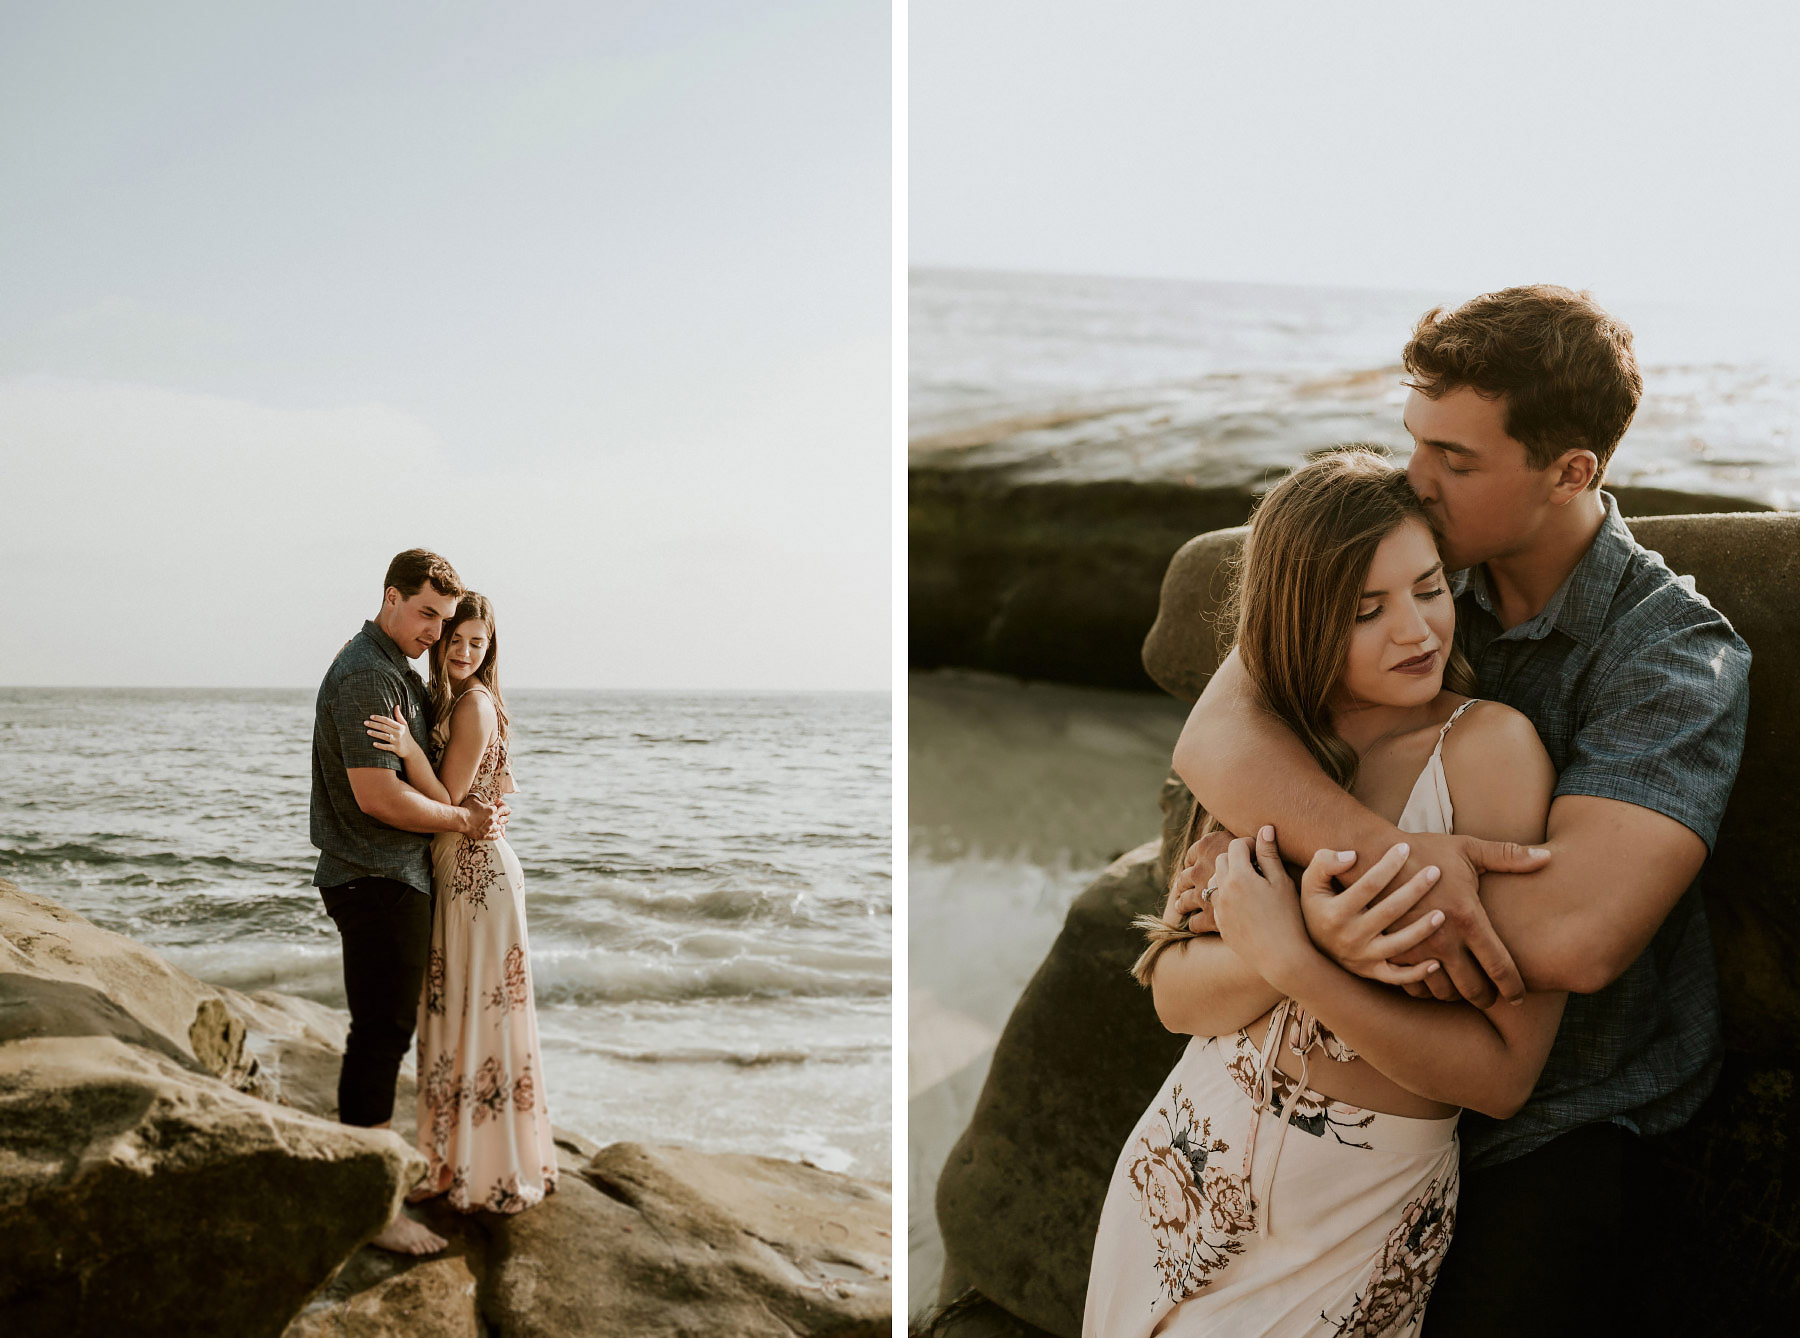 Couple embracing against beach rocks